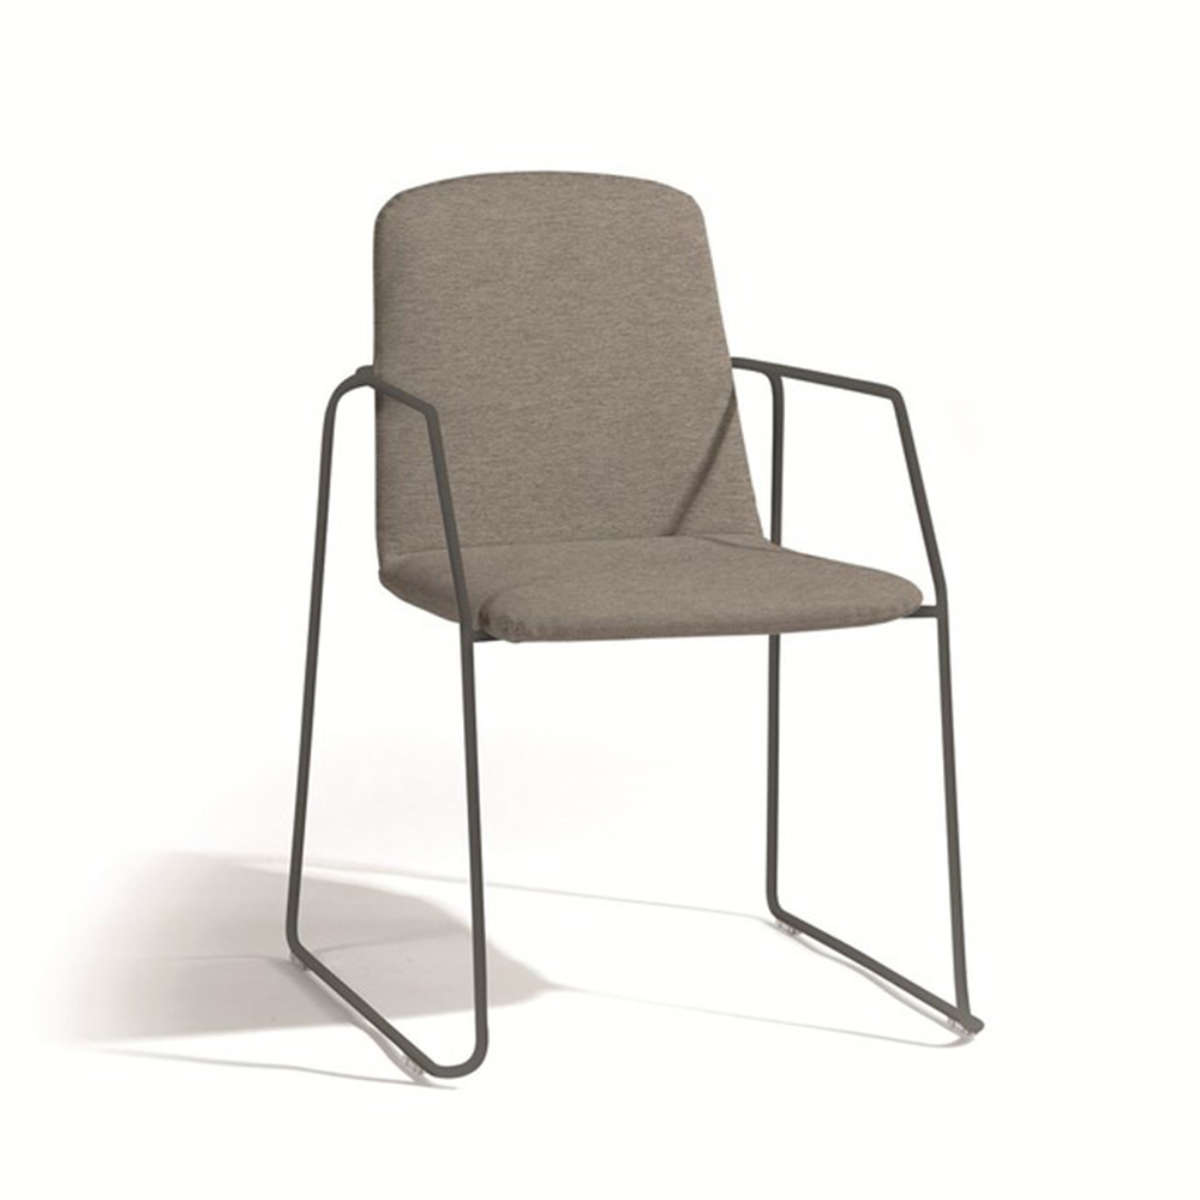 Manutti Loop Armchair Sparrow Studio